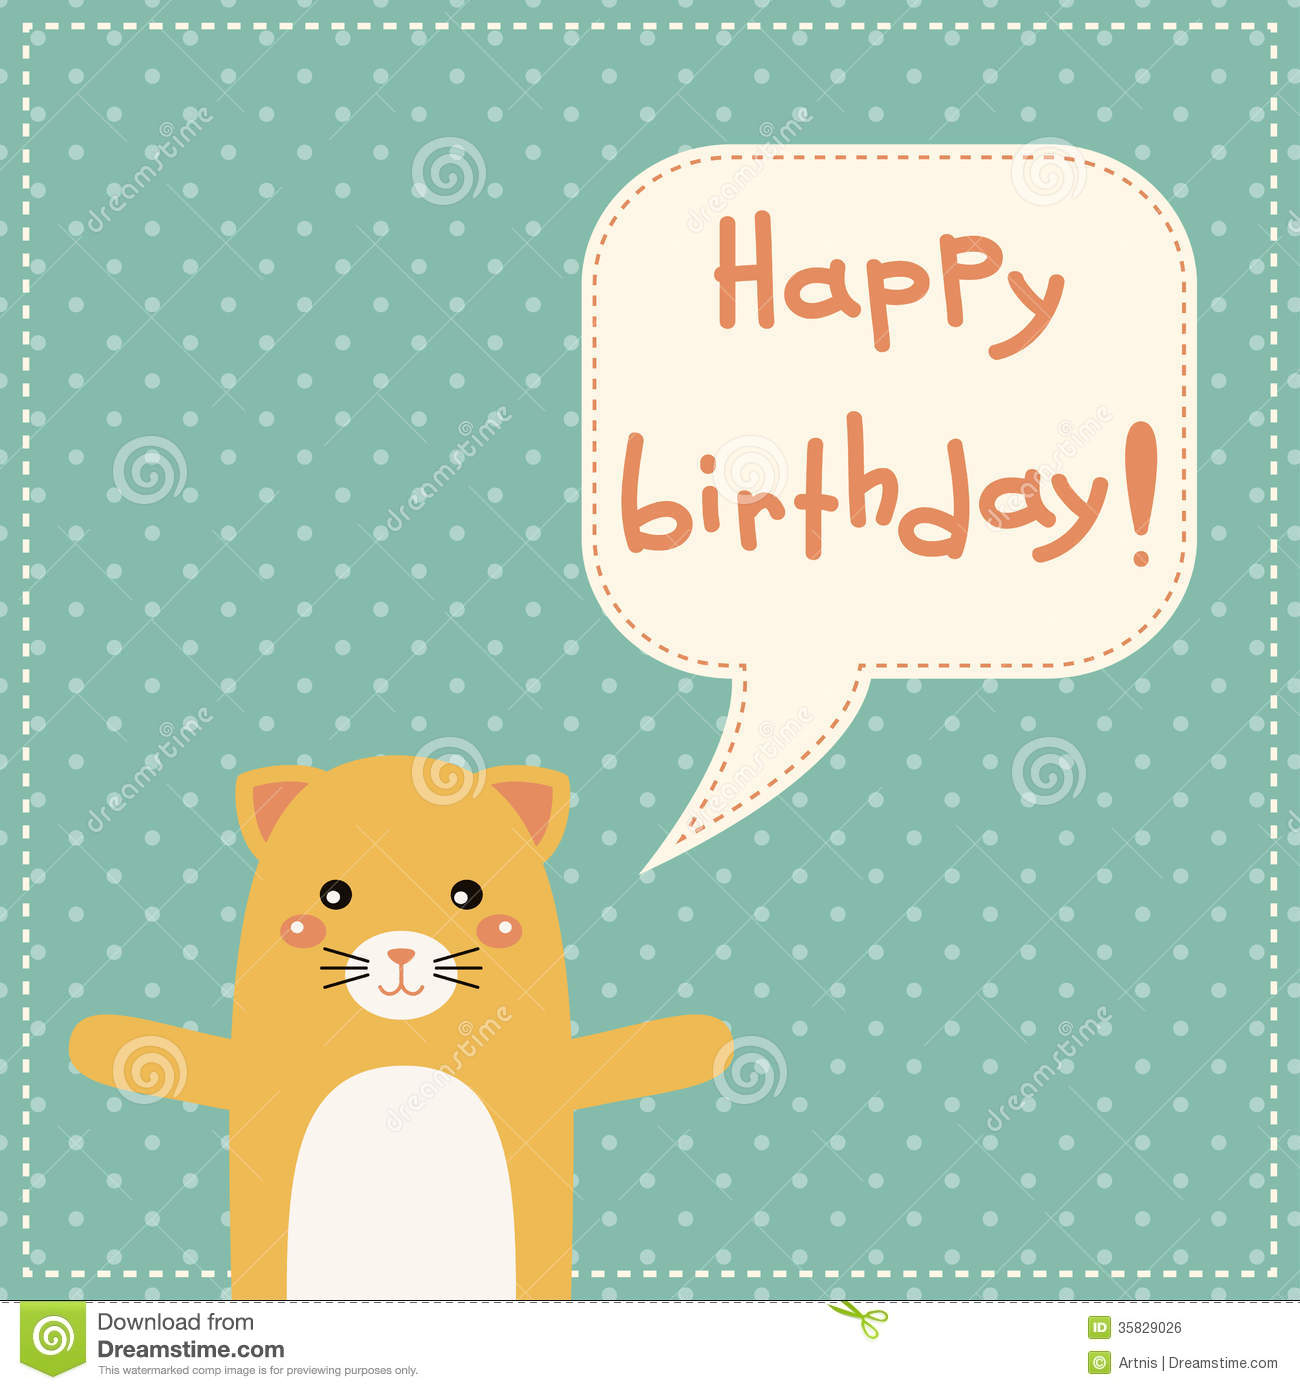 Cute Happy Birthday Card With Fun Cat Vector Image 62174852 – Unique Happy Birthday Greetings